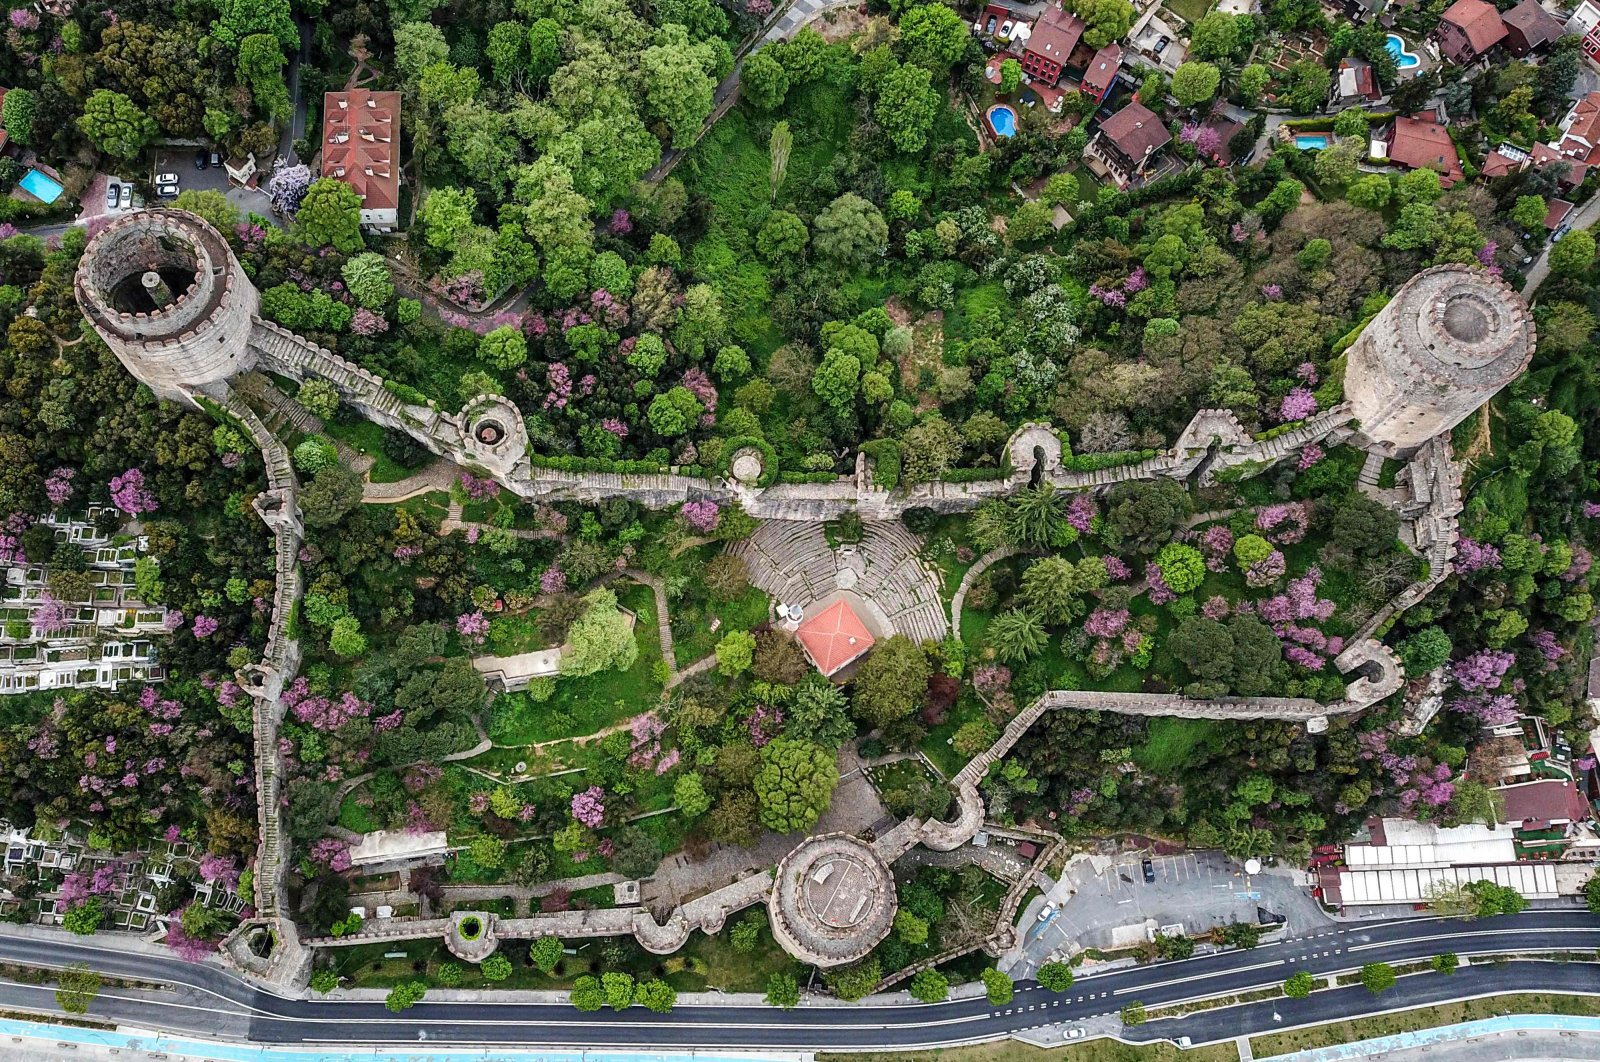 An aerial view shows the Rumelihisarı castle along the Bosporus, in Istanbul, Turkey, during a three-day curfew to prevent the spread of COVID-19, May 3, 2020. (AFP Photo)